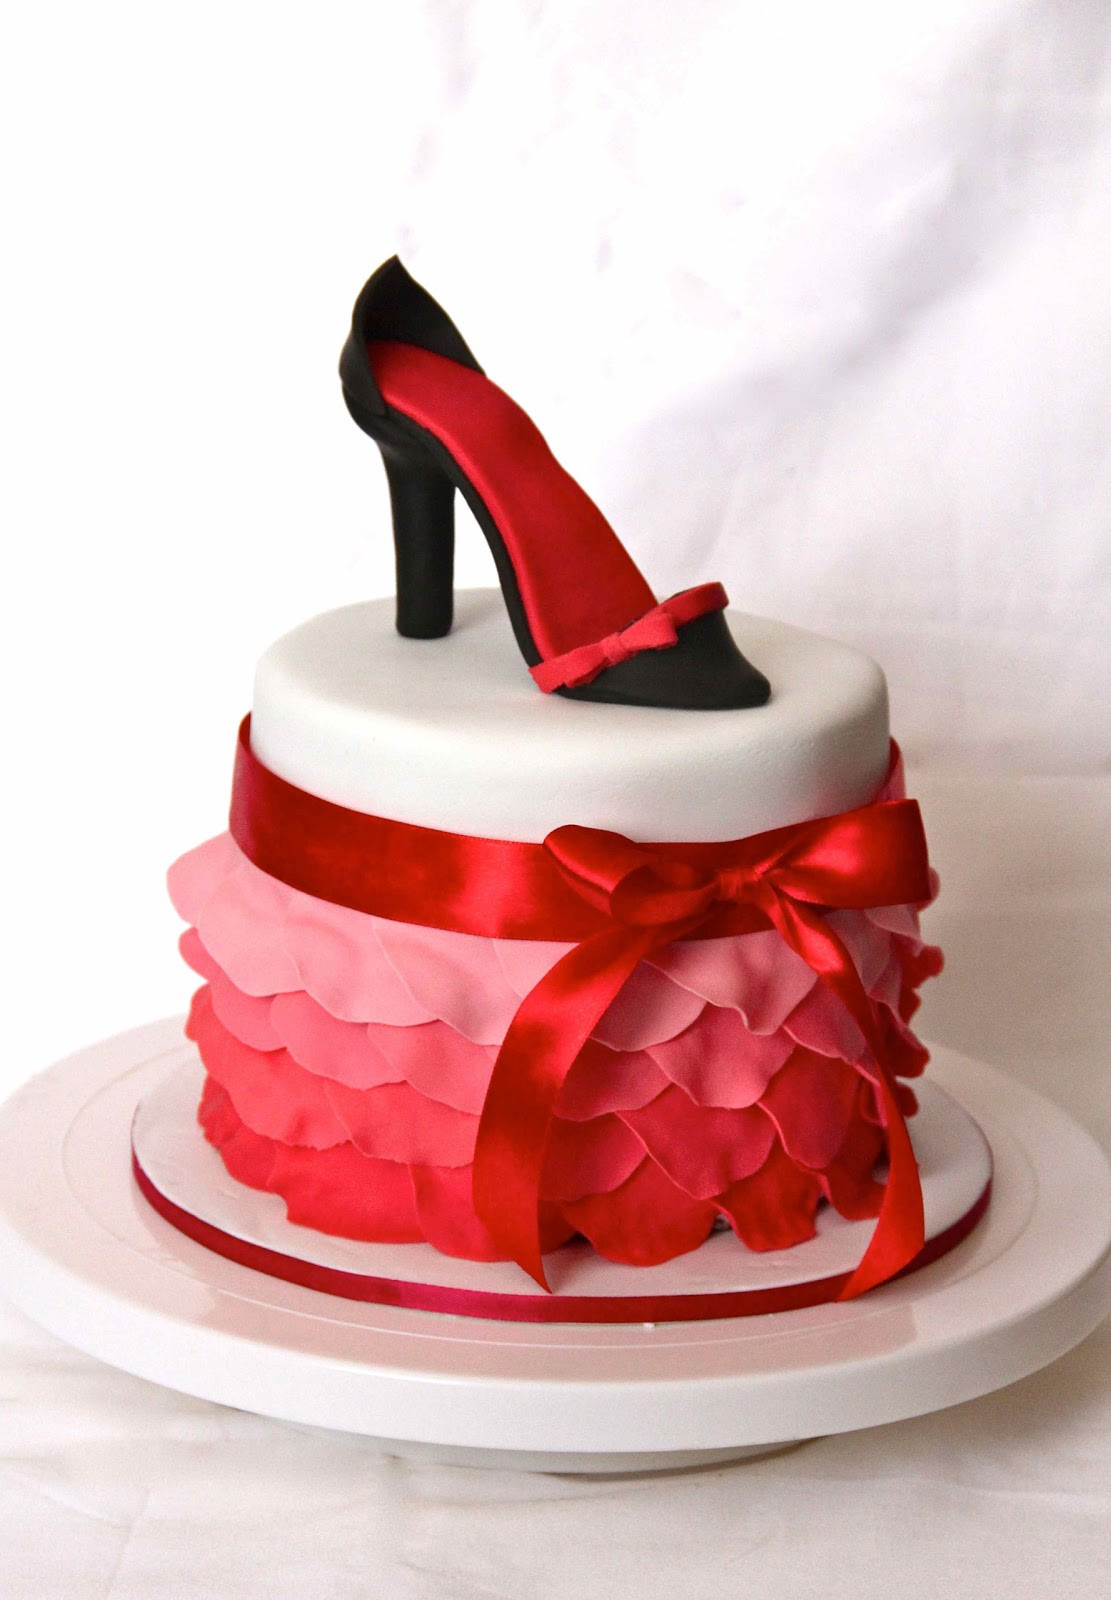 Best ideas about Shoes Birthday Cake . Save or Pin Bakerz Dad Petal and Shoe Cake Now.